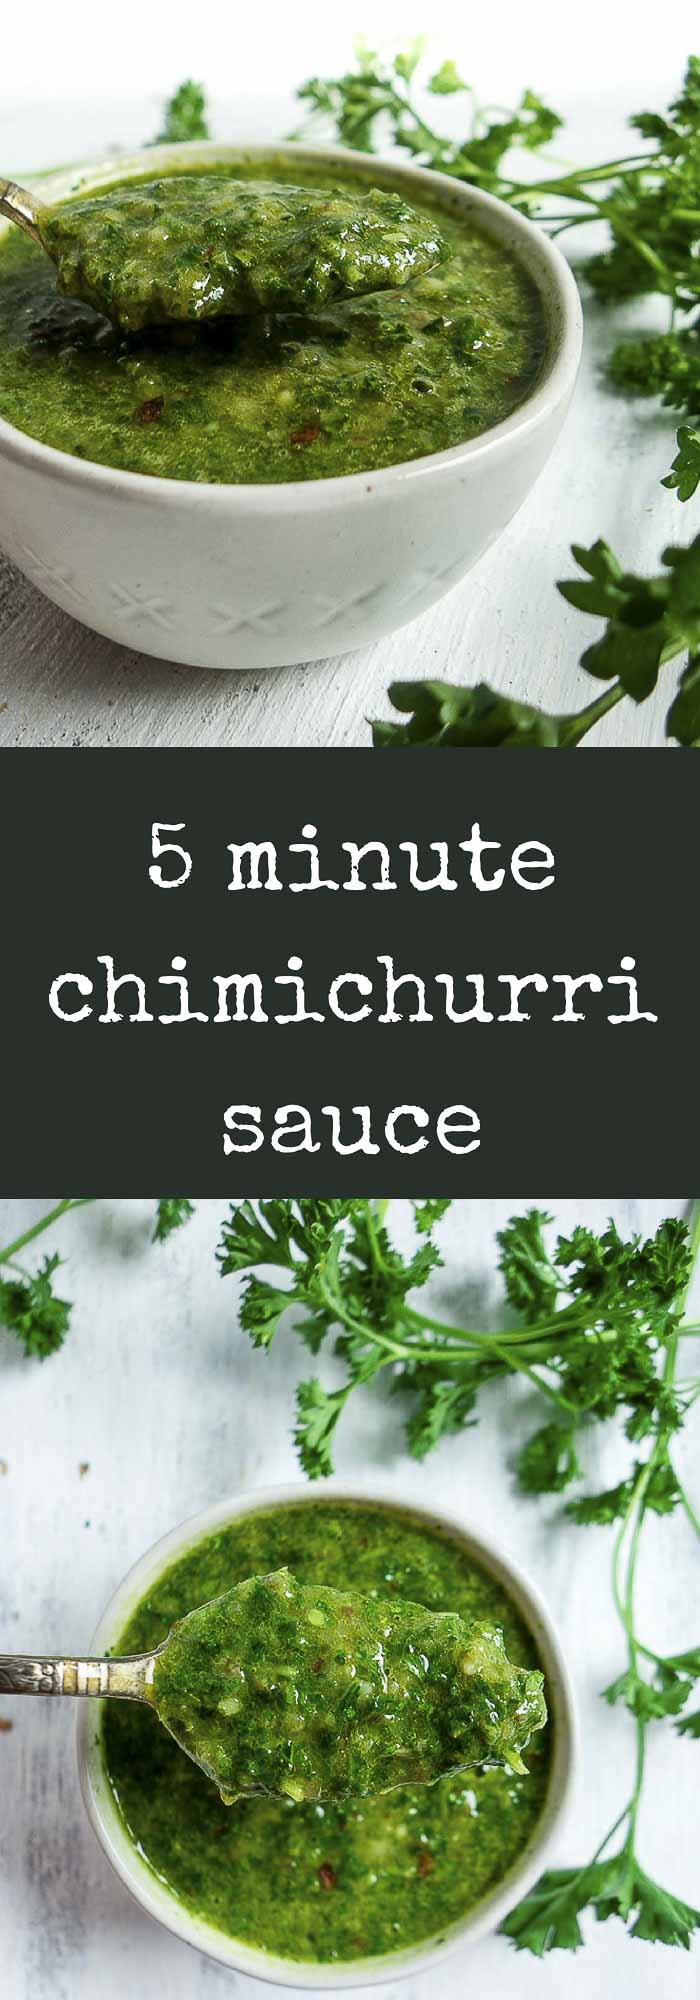 Packed full of fresh herbs, extra virgin olive oil, vinegar and fresh lemon juice, & an touch of spice, this 5 minute Chimichurri sauce is amazingly fresh and flavorful!paleo chimichurri sauce | vegan chimichurri | fresh herb chimichurri | Argentinian recipes | easy chimichurri | traditional chimichurri | spicy chimichurri | brazilian chimichurri | homemade chimichurri | how to use chimichurri | chimichurri ingredients